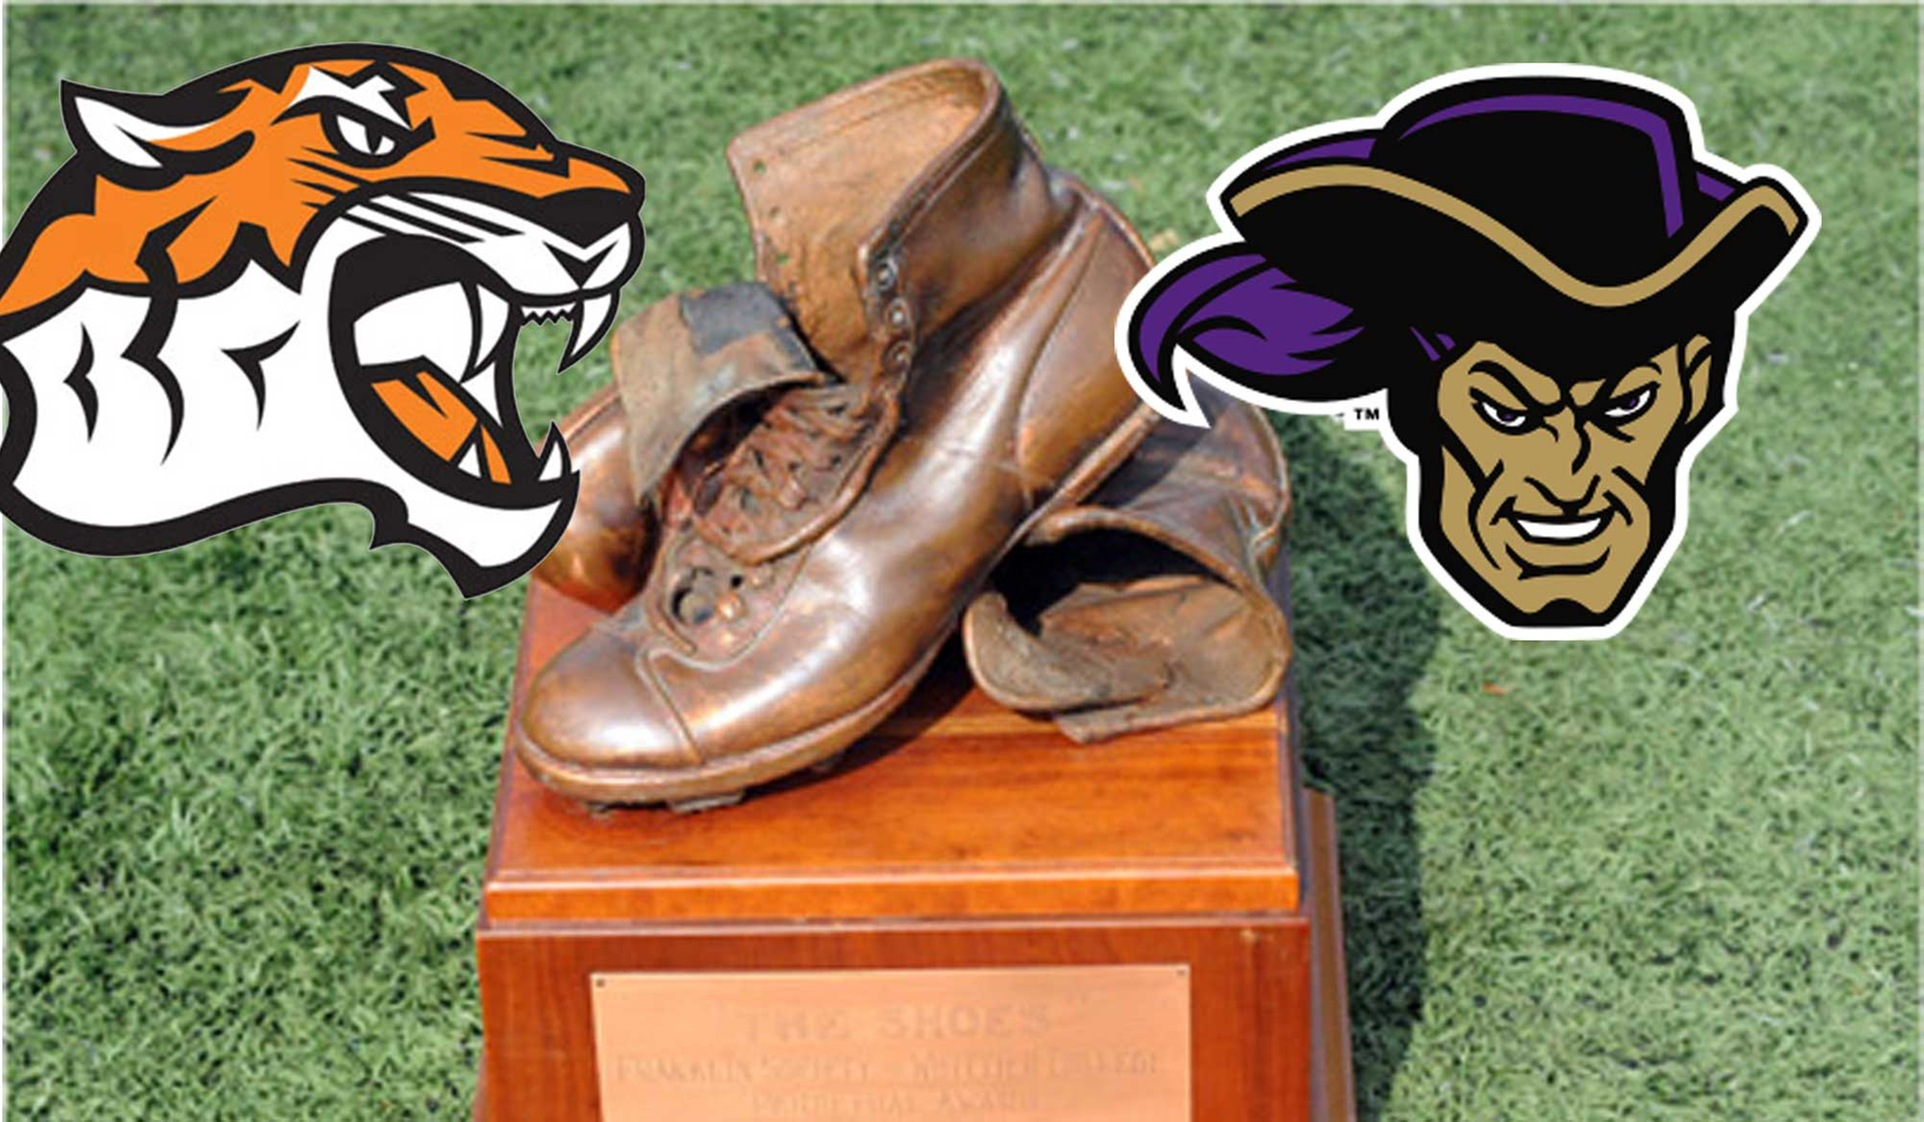 Oxy to Play Whittier in Battle for the Shoes